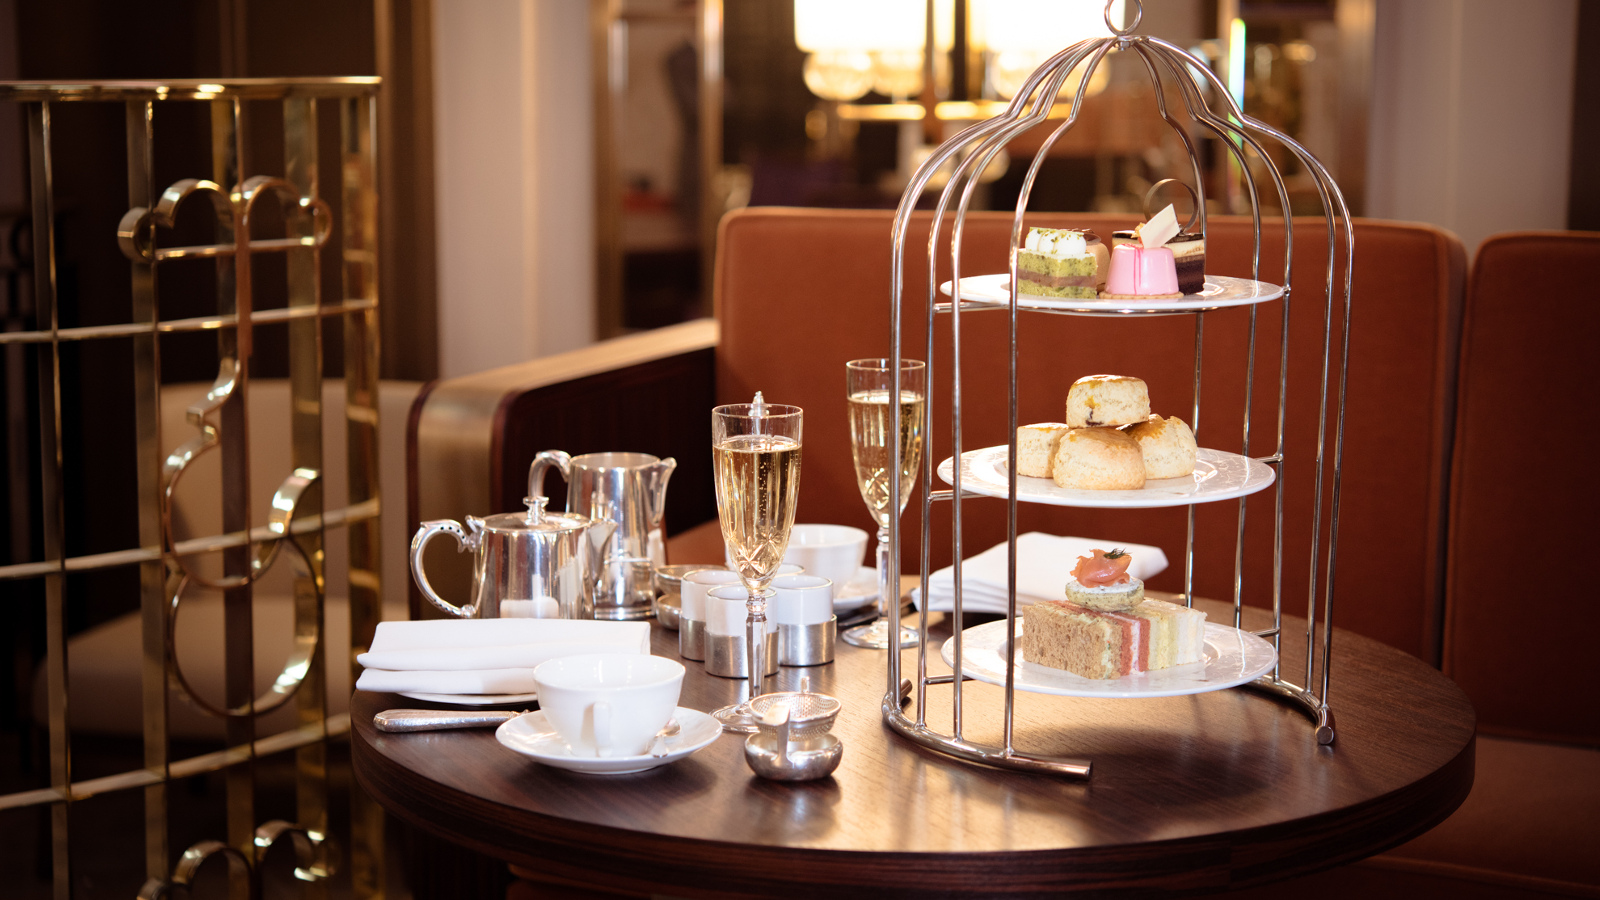 Afternoon Tea in the Palm Court - Sheraton Grand London Park Lane